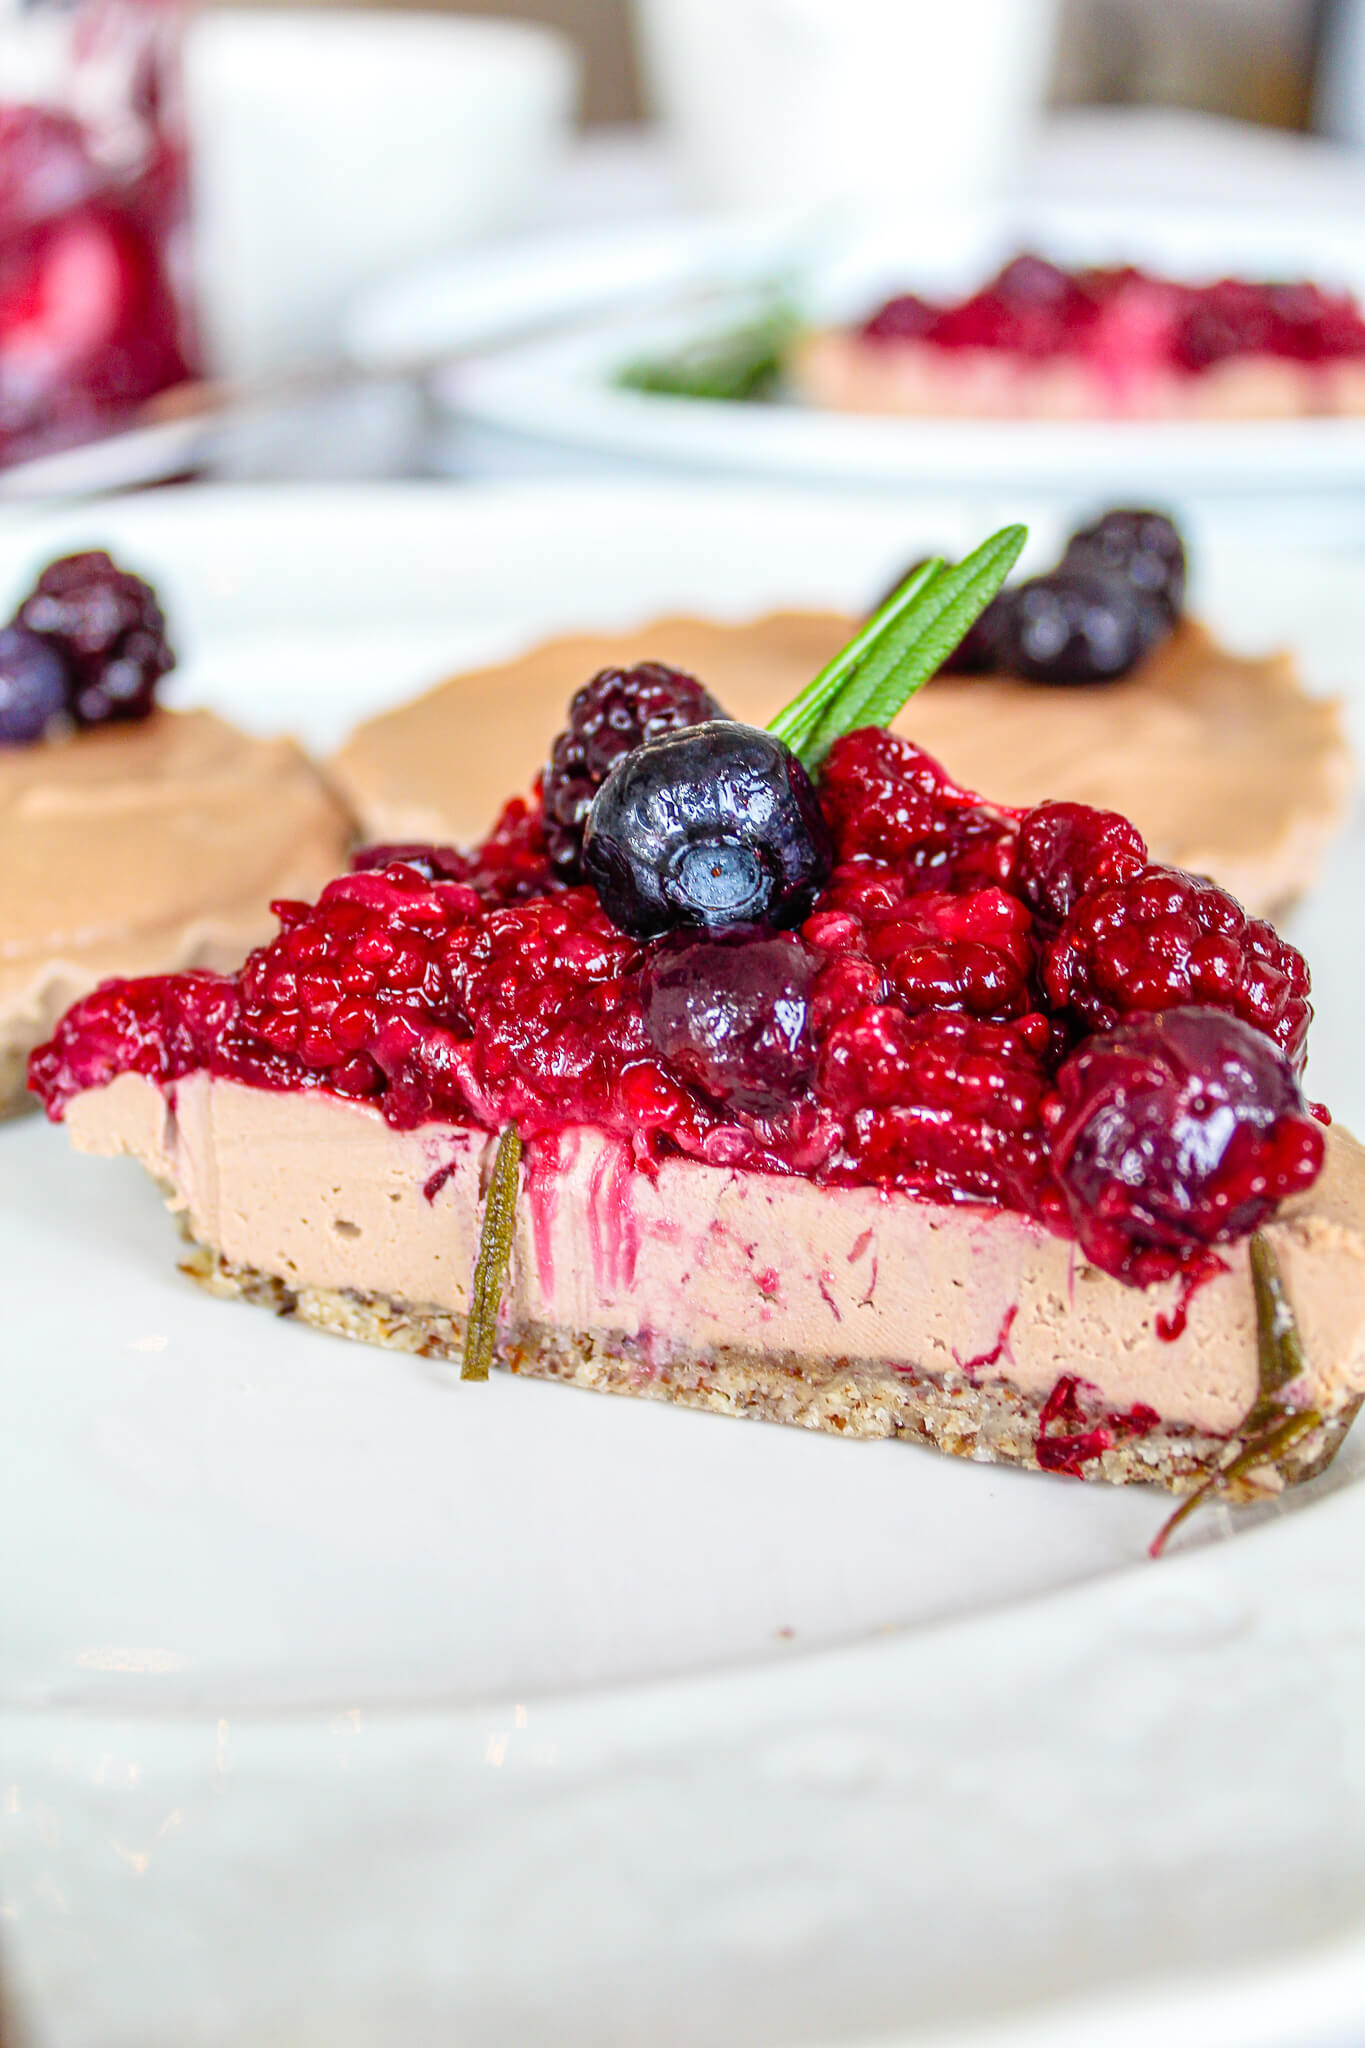 Sustainable and Plant-based Lifestyle influencer shares her delicious chocolate cherry cake recipe!